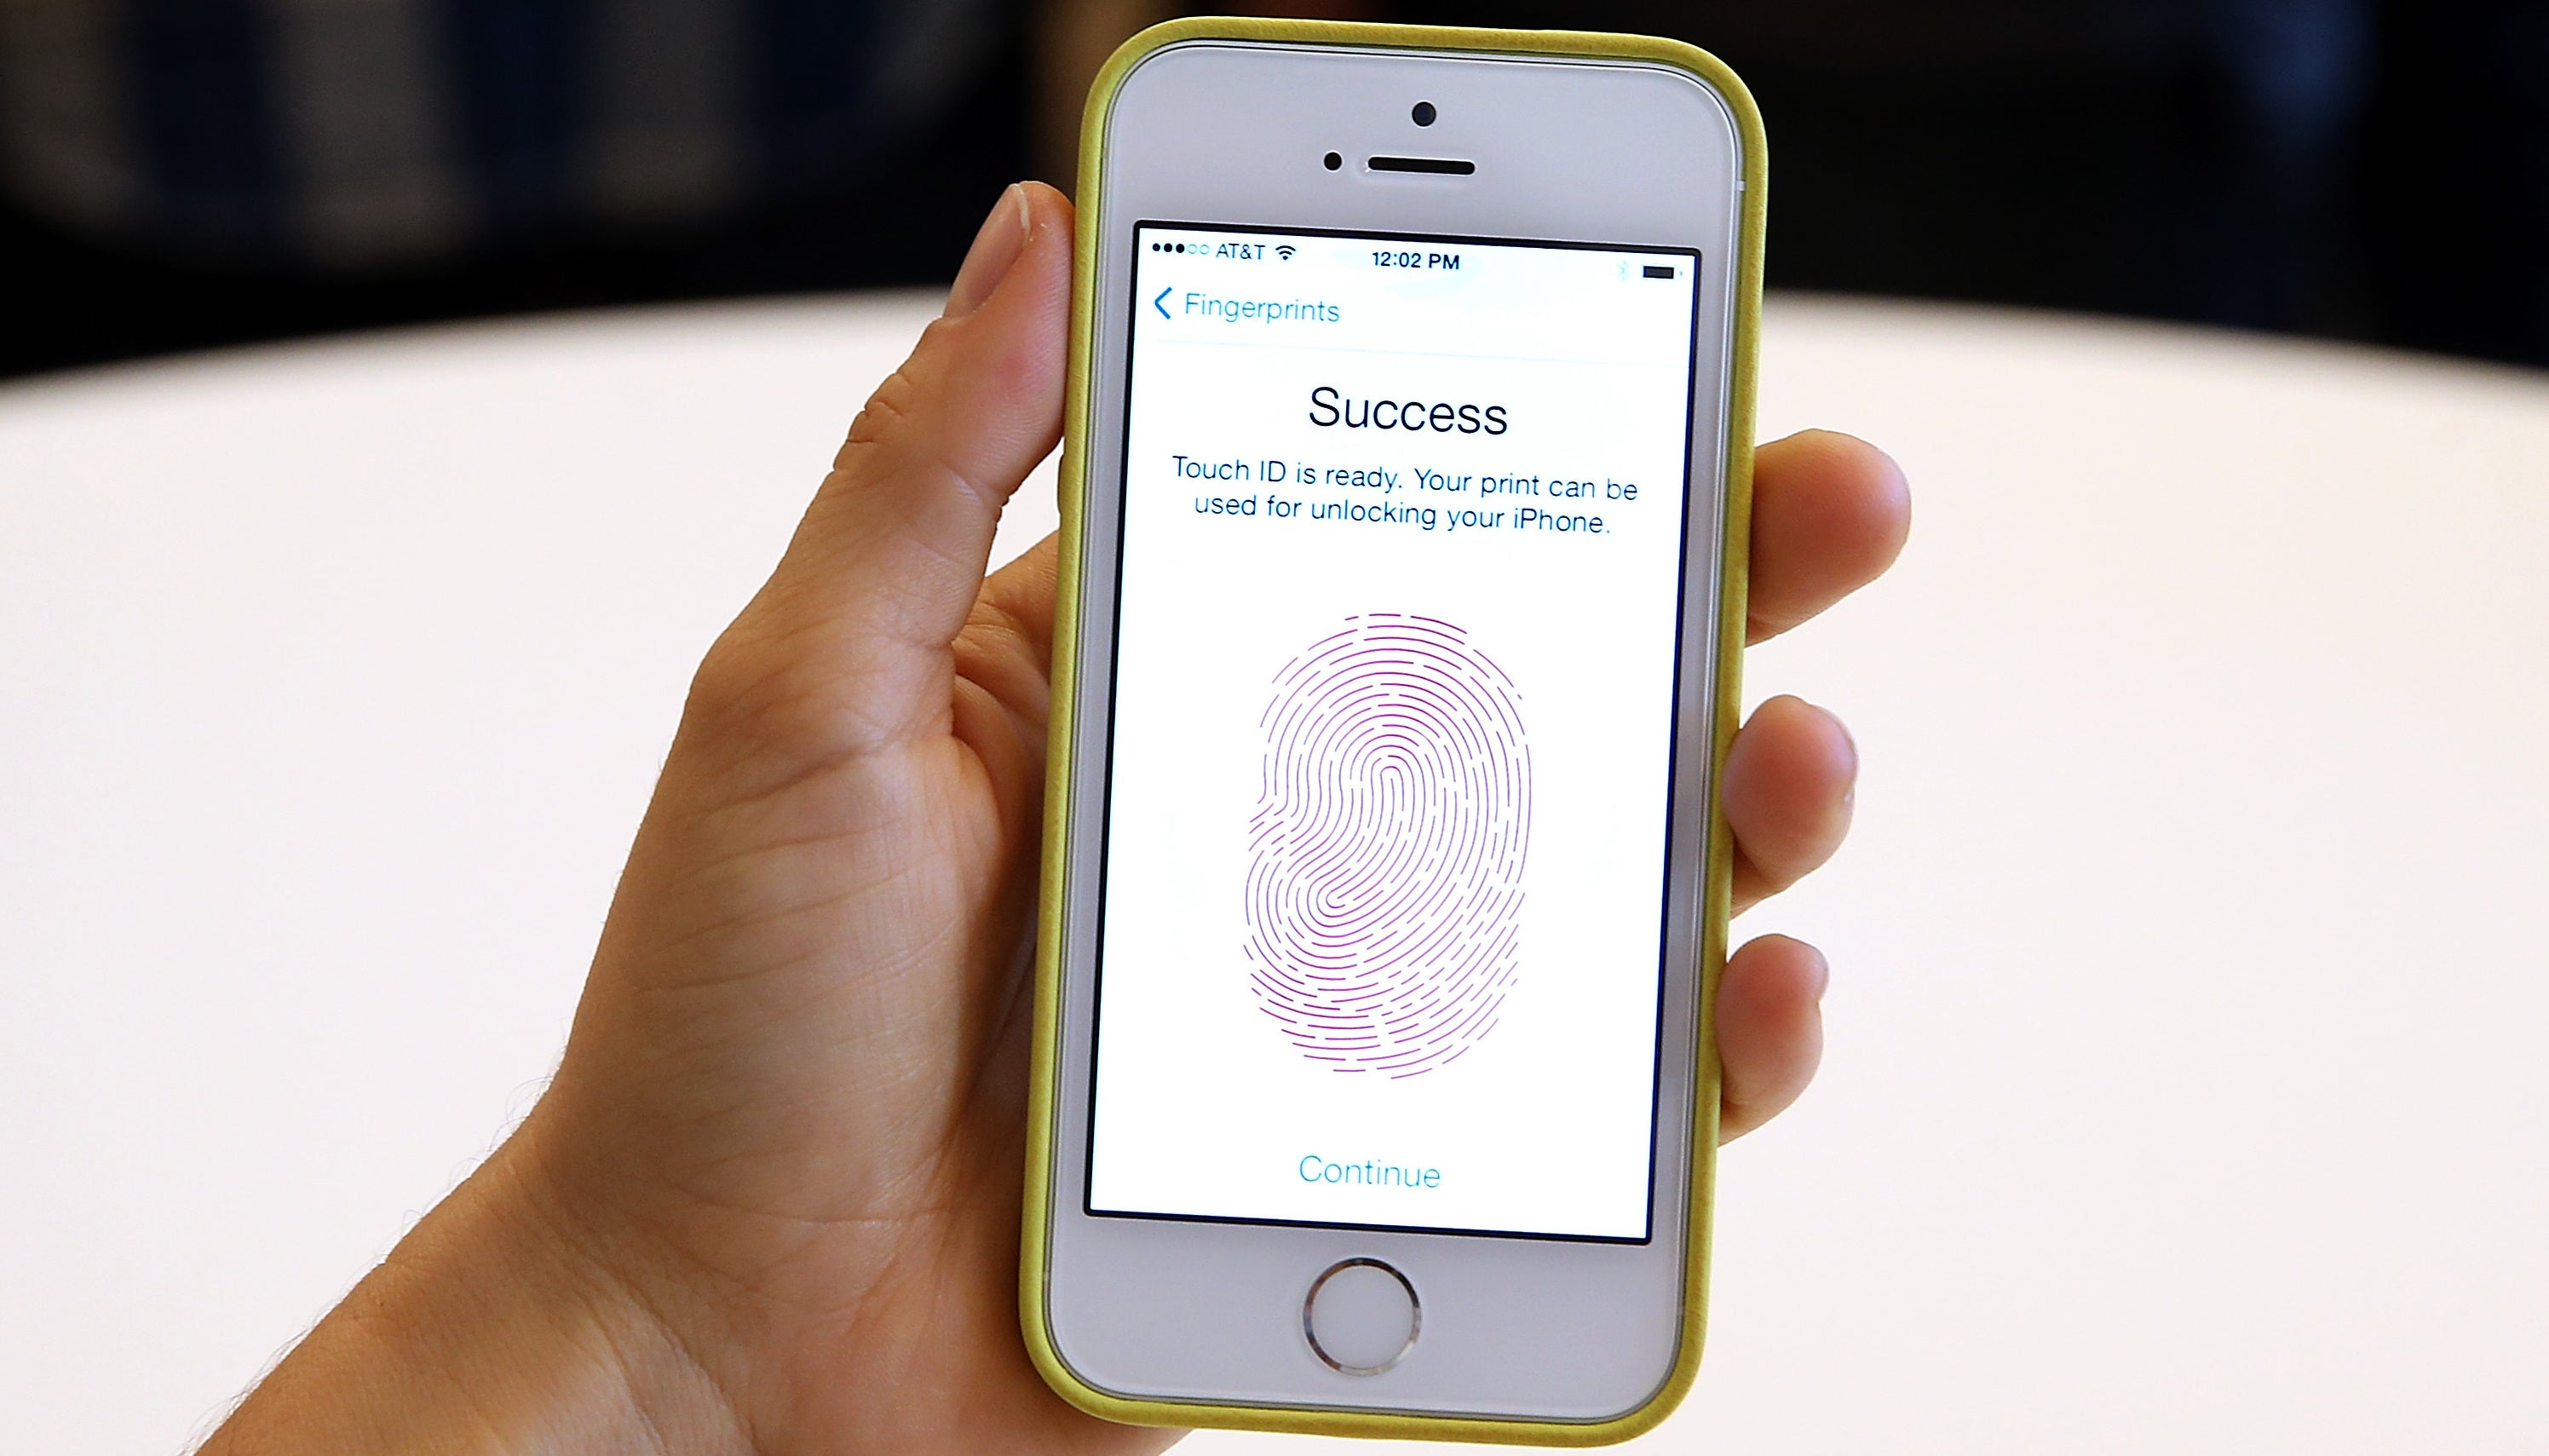 Cops Can't Force People To Unlock Their Phones With Biometrics, US Court Rules